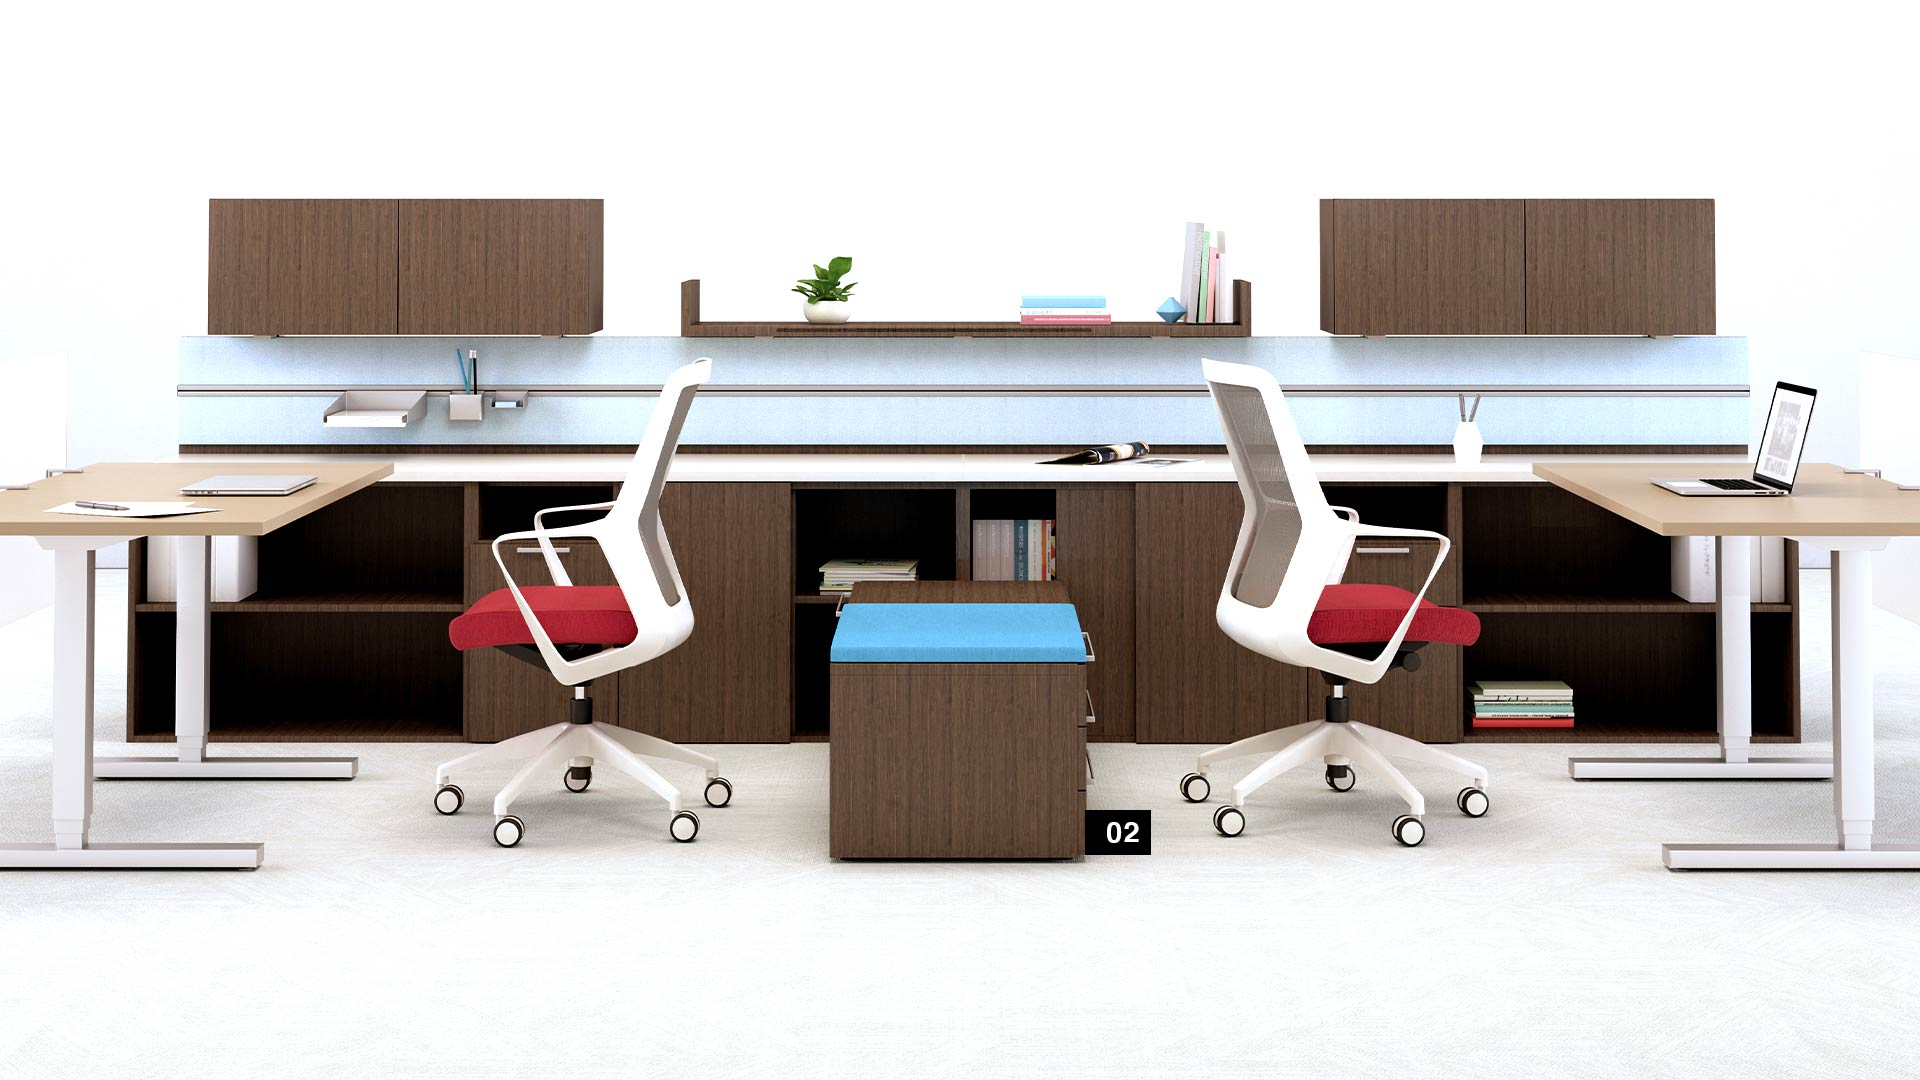 abstract-modern-furniture-ofs-staks-and-flexxy